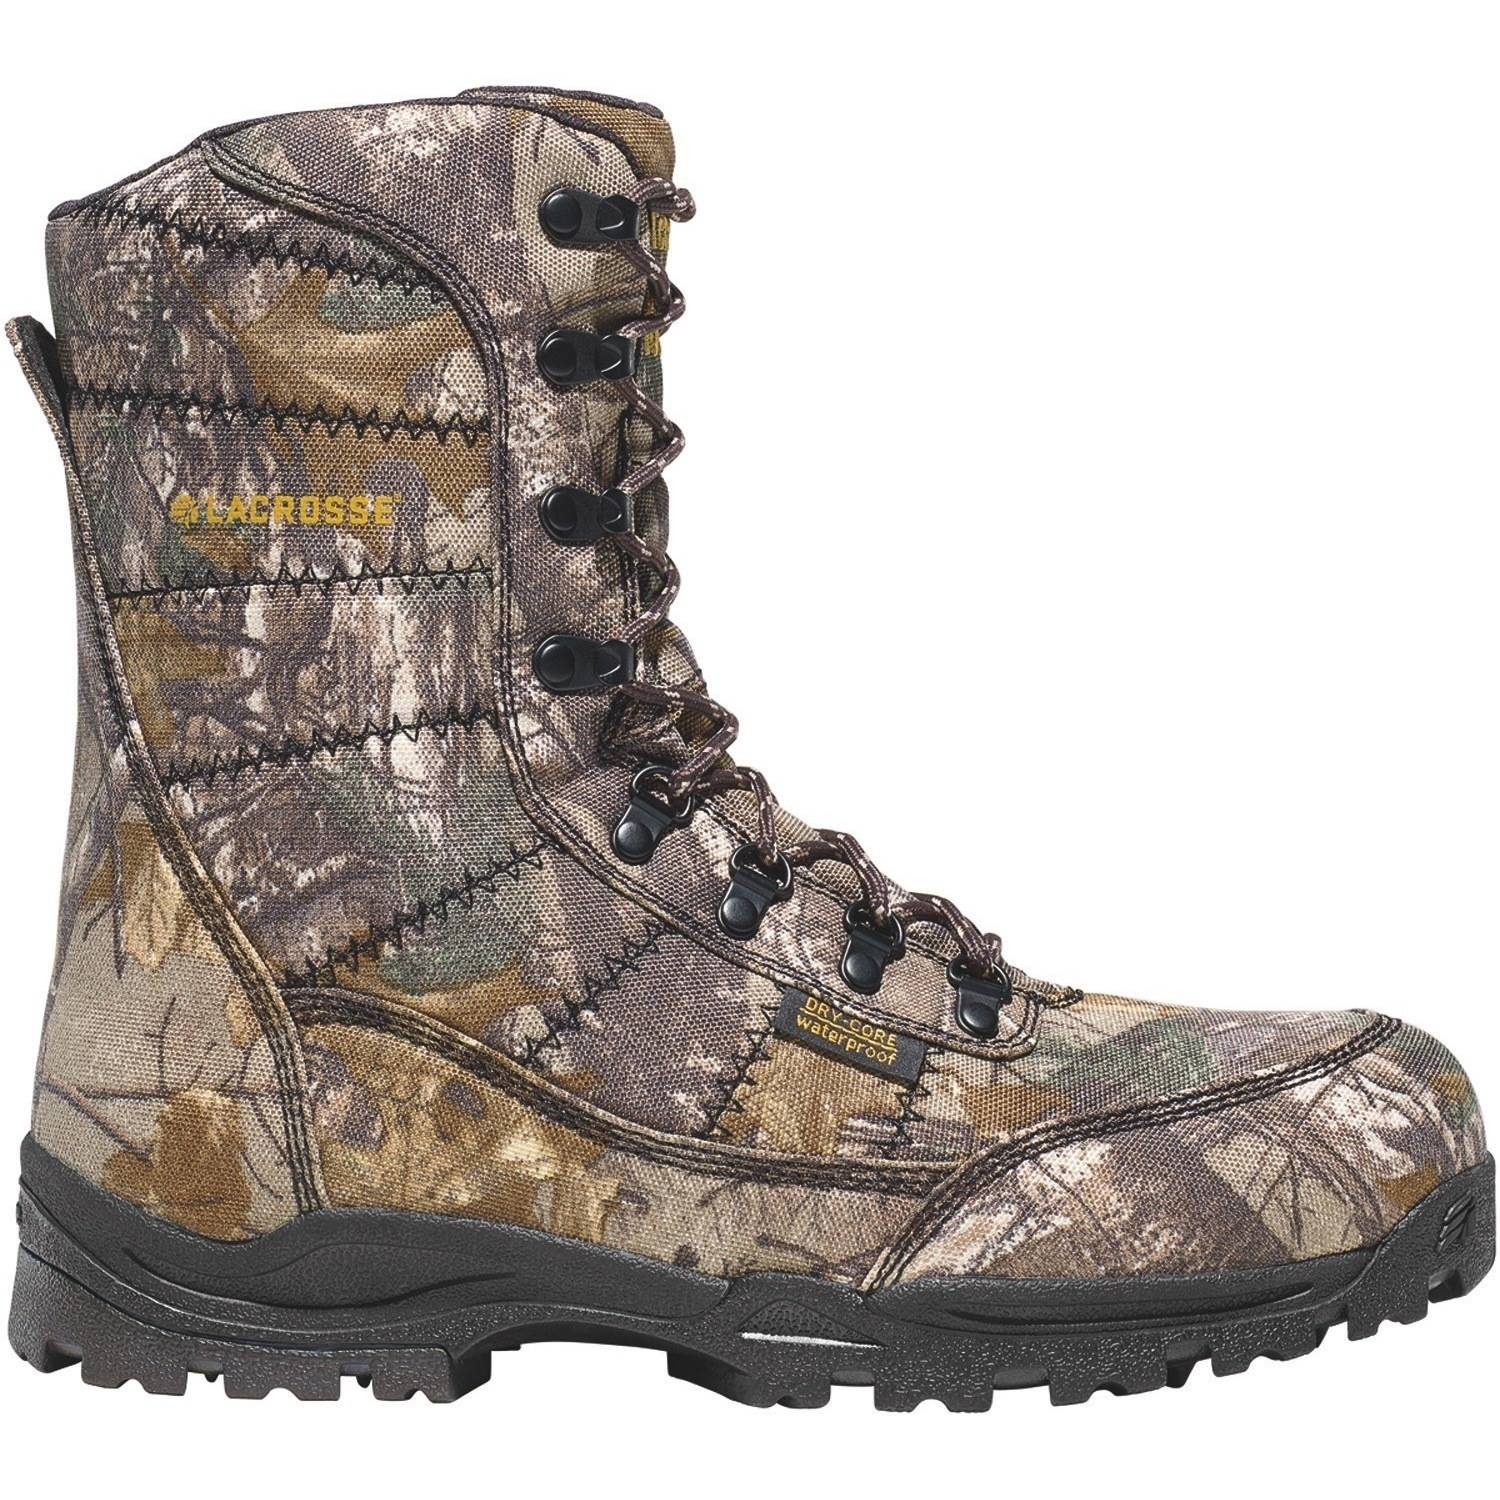 LaCrosse Silencer Boot, 1000g, Realtree Xtra by LACROSSE